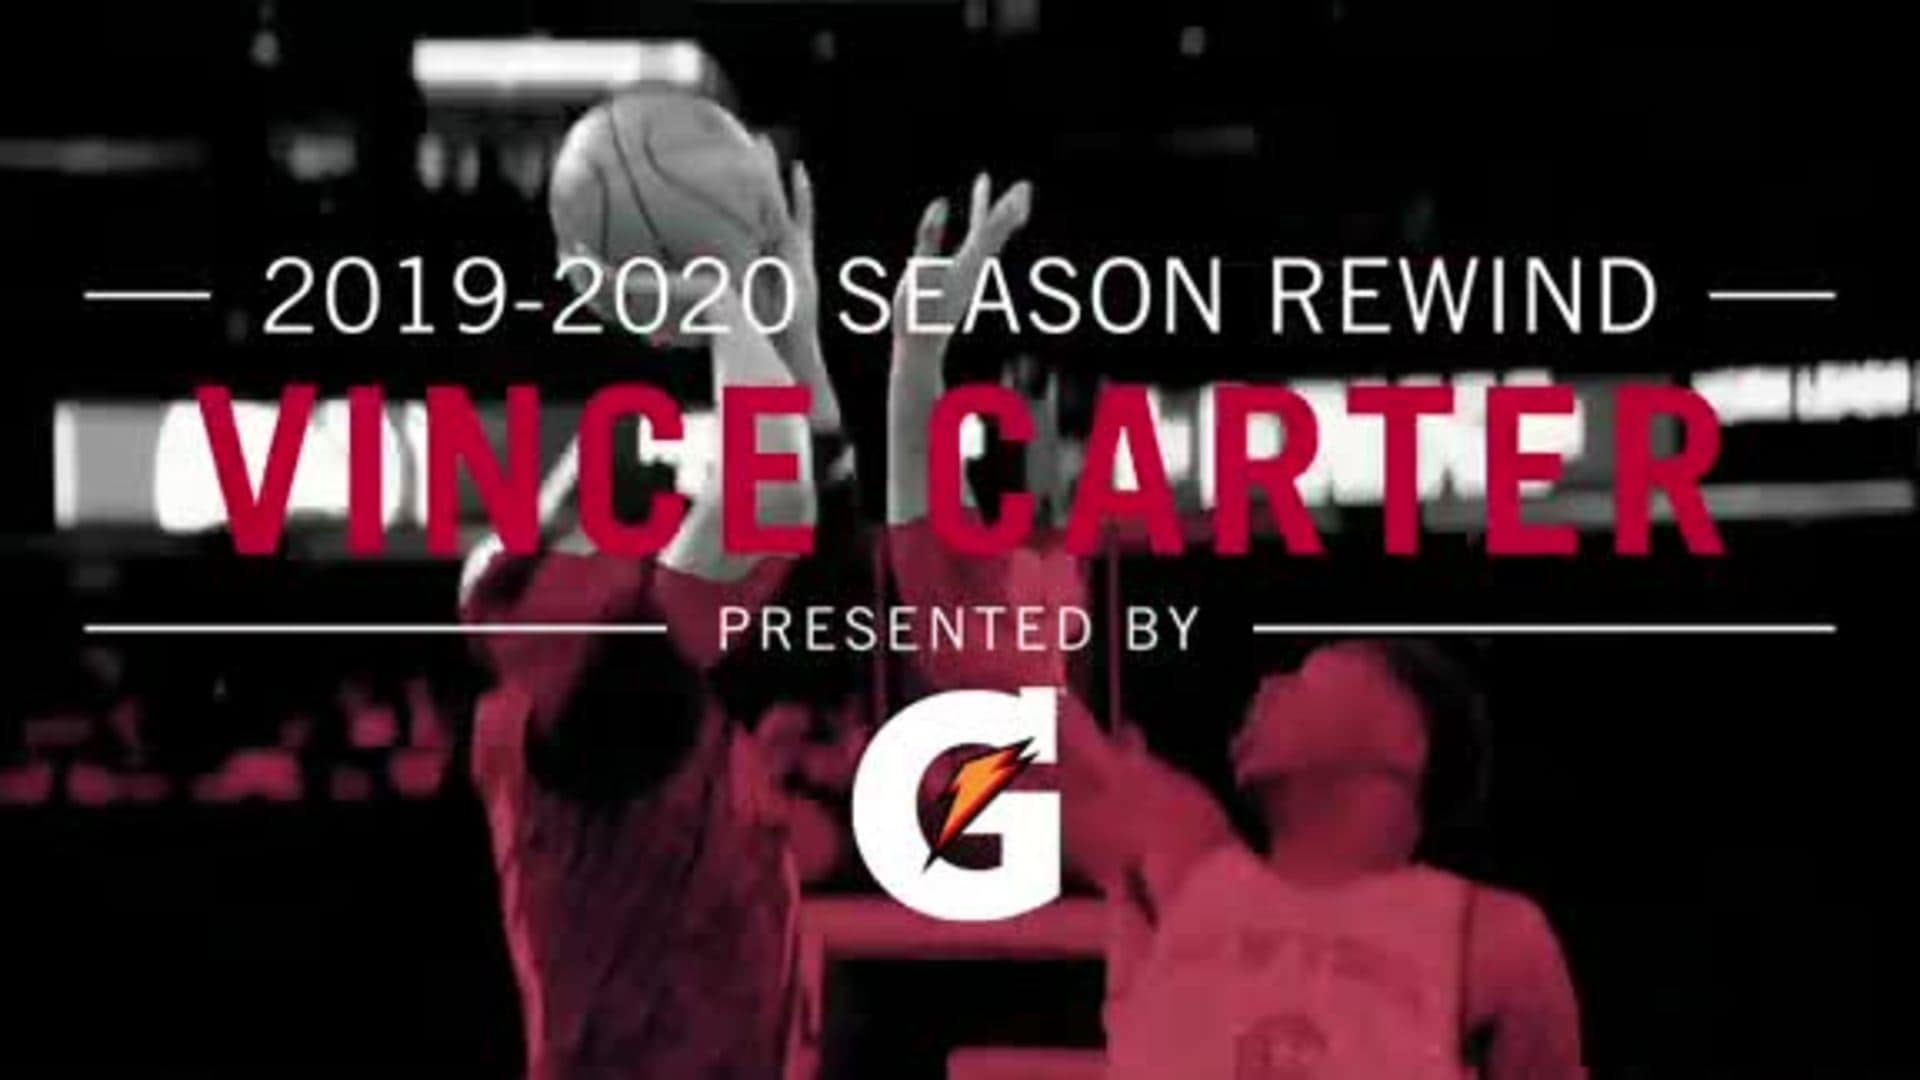 19-20 Season Rewind presented by Gatorade: Vince Carter Top Plays